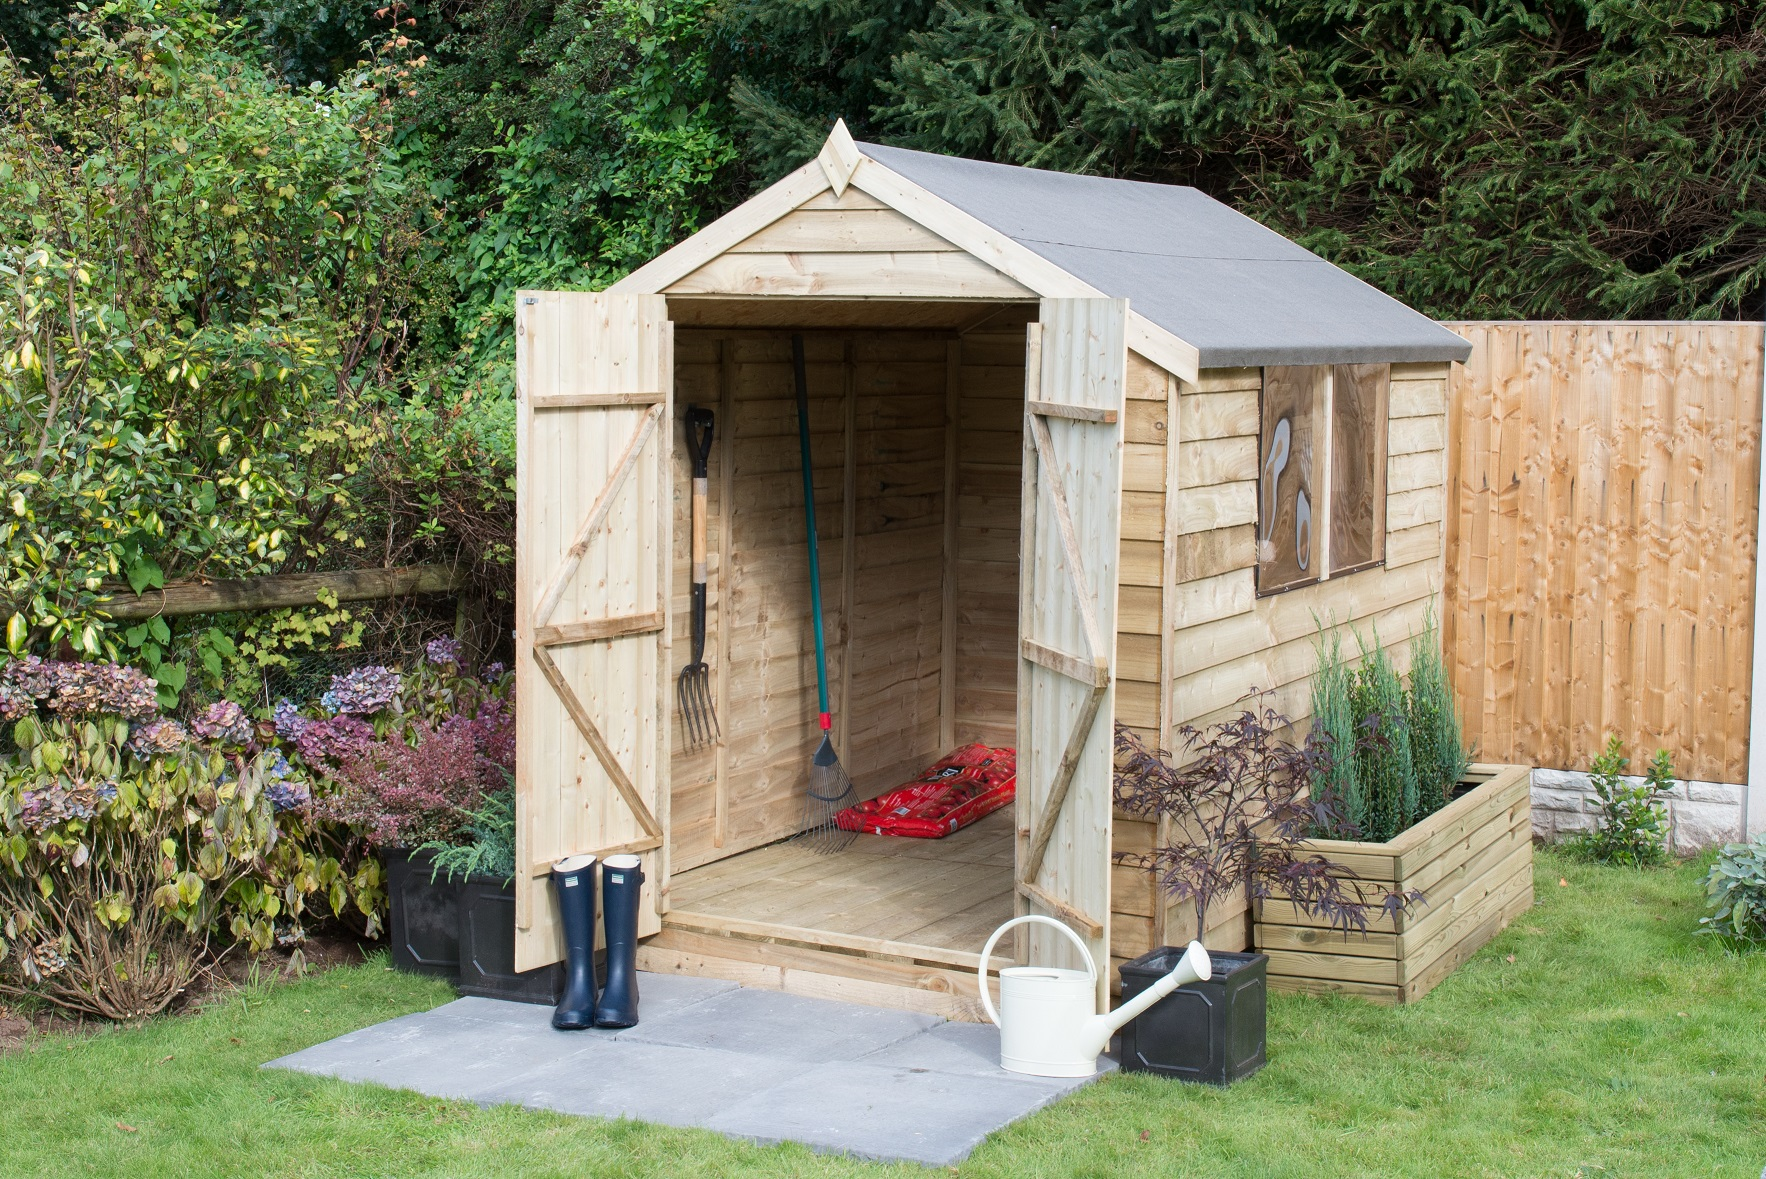 OPA68DDHD (1) 8x6 APEX SHED - DOUBLE DOOR SRP £319.99 copy